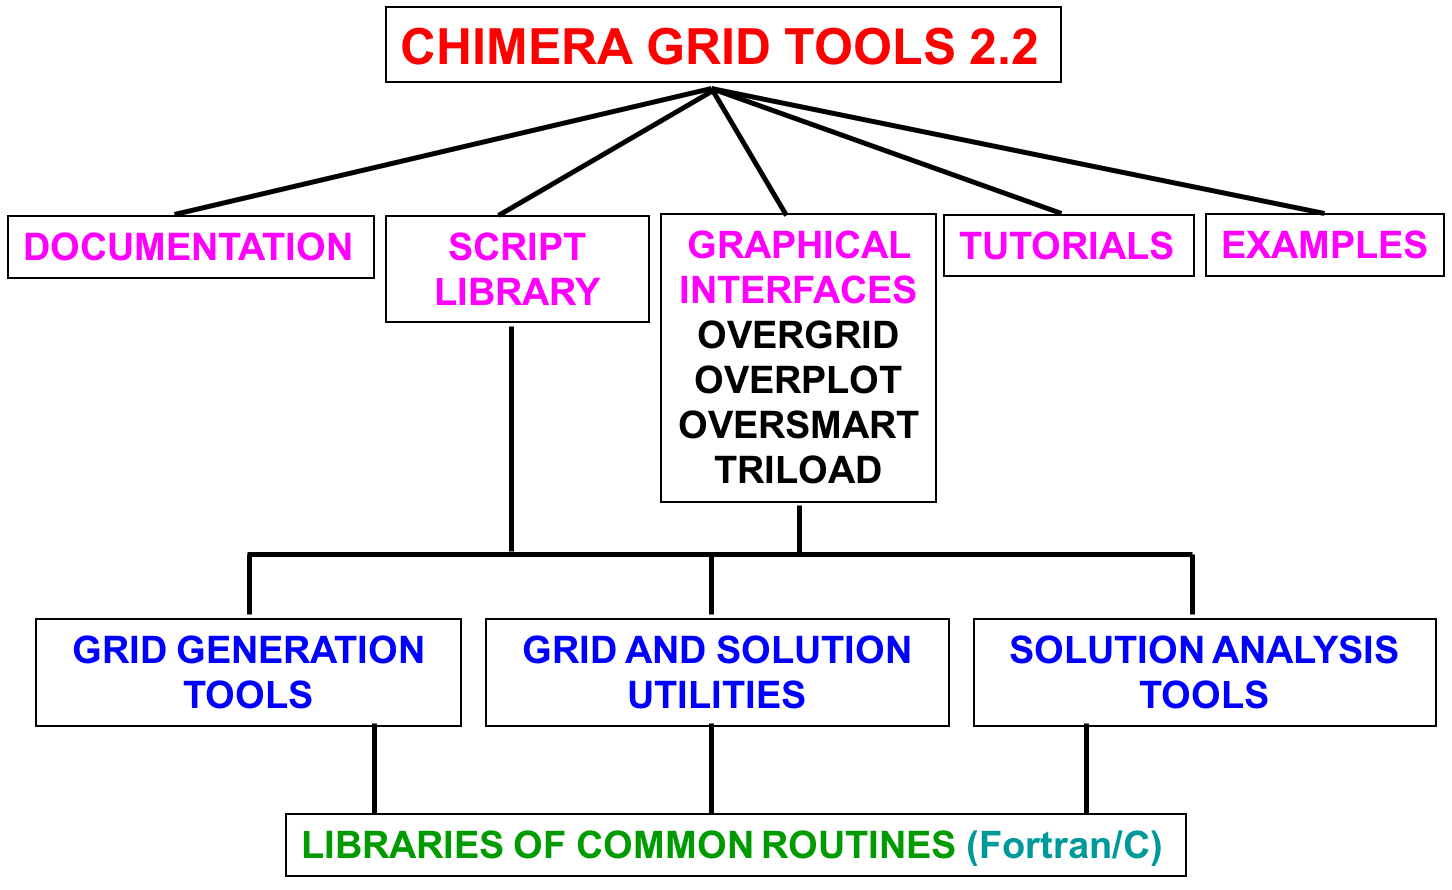 Chimera Grid Tools